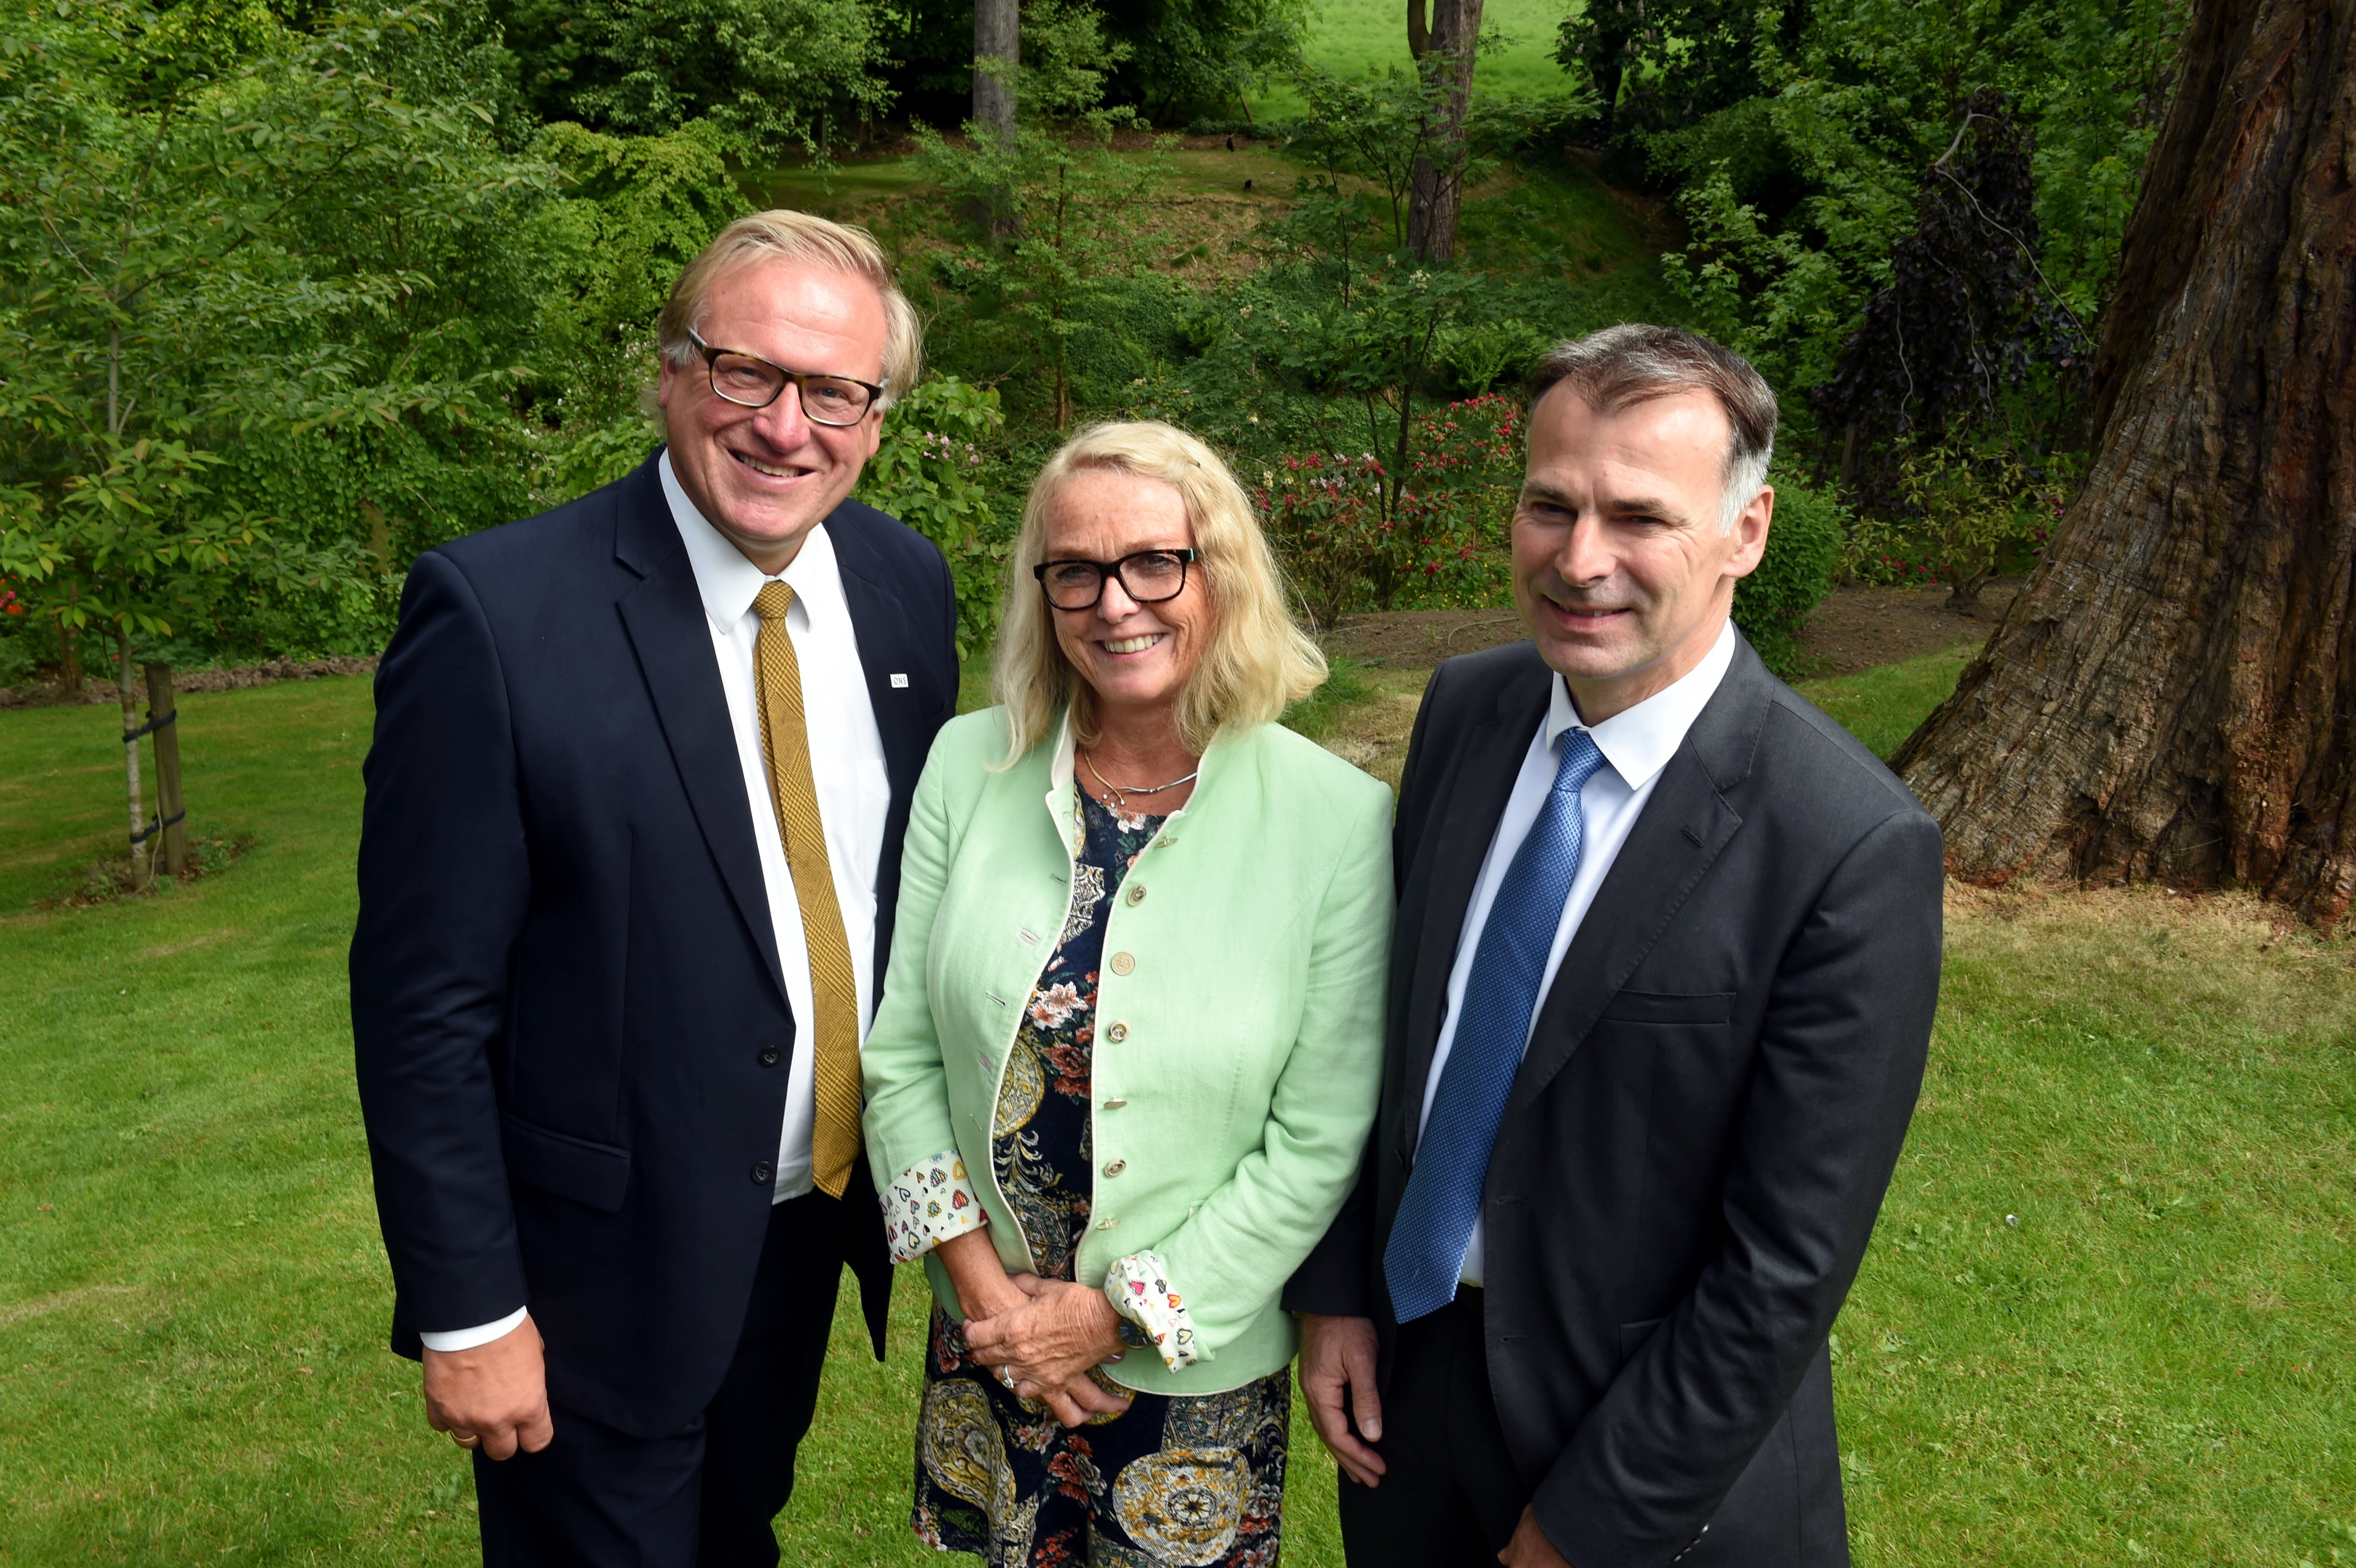 From left: Leif Johan Sevland, president and CEO of ONS: Lise Dean, sales and distribution director of Wideroe and Jamie Stark, partner in Burness Paull's corporate finance division.